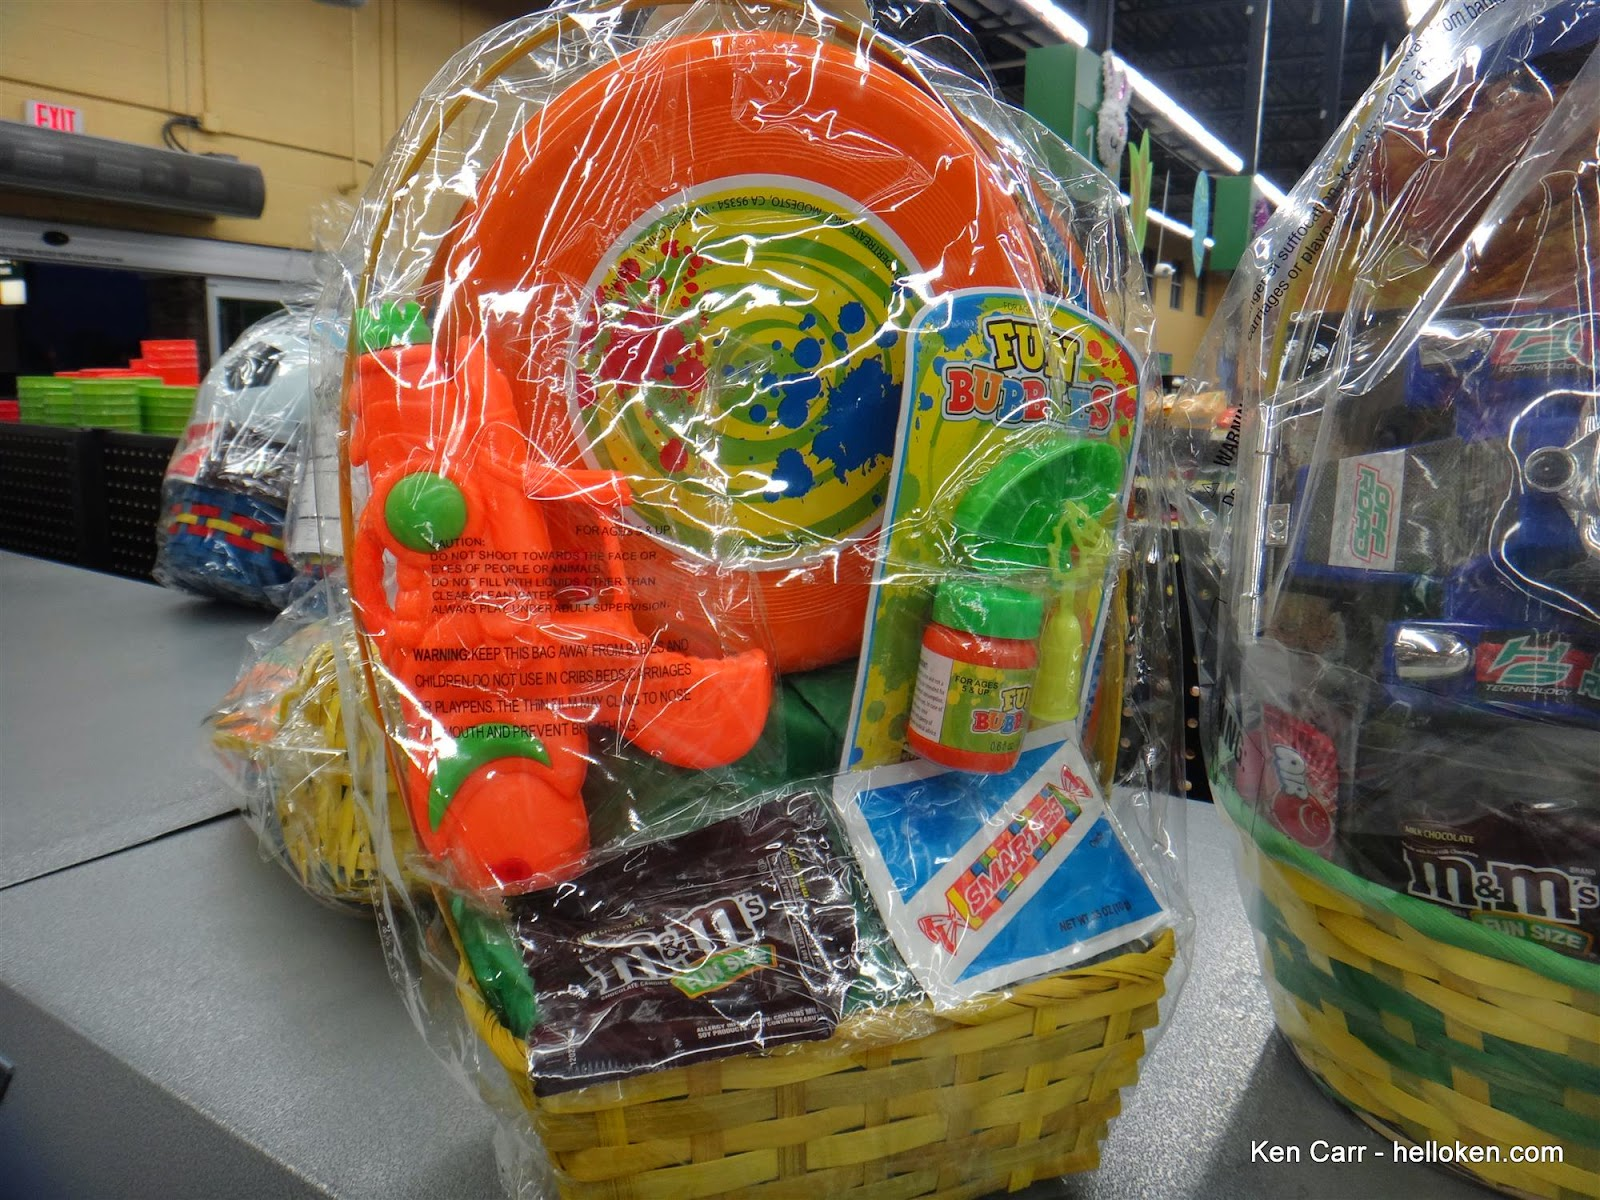 Ken carr blog easter dinner at sonic and kracker nuts unsold easter basket at walmart market some lucky kid is going to get candy and a squirt gun on sale tomorrow negle Choice Image